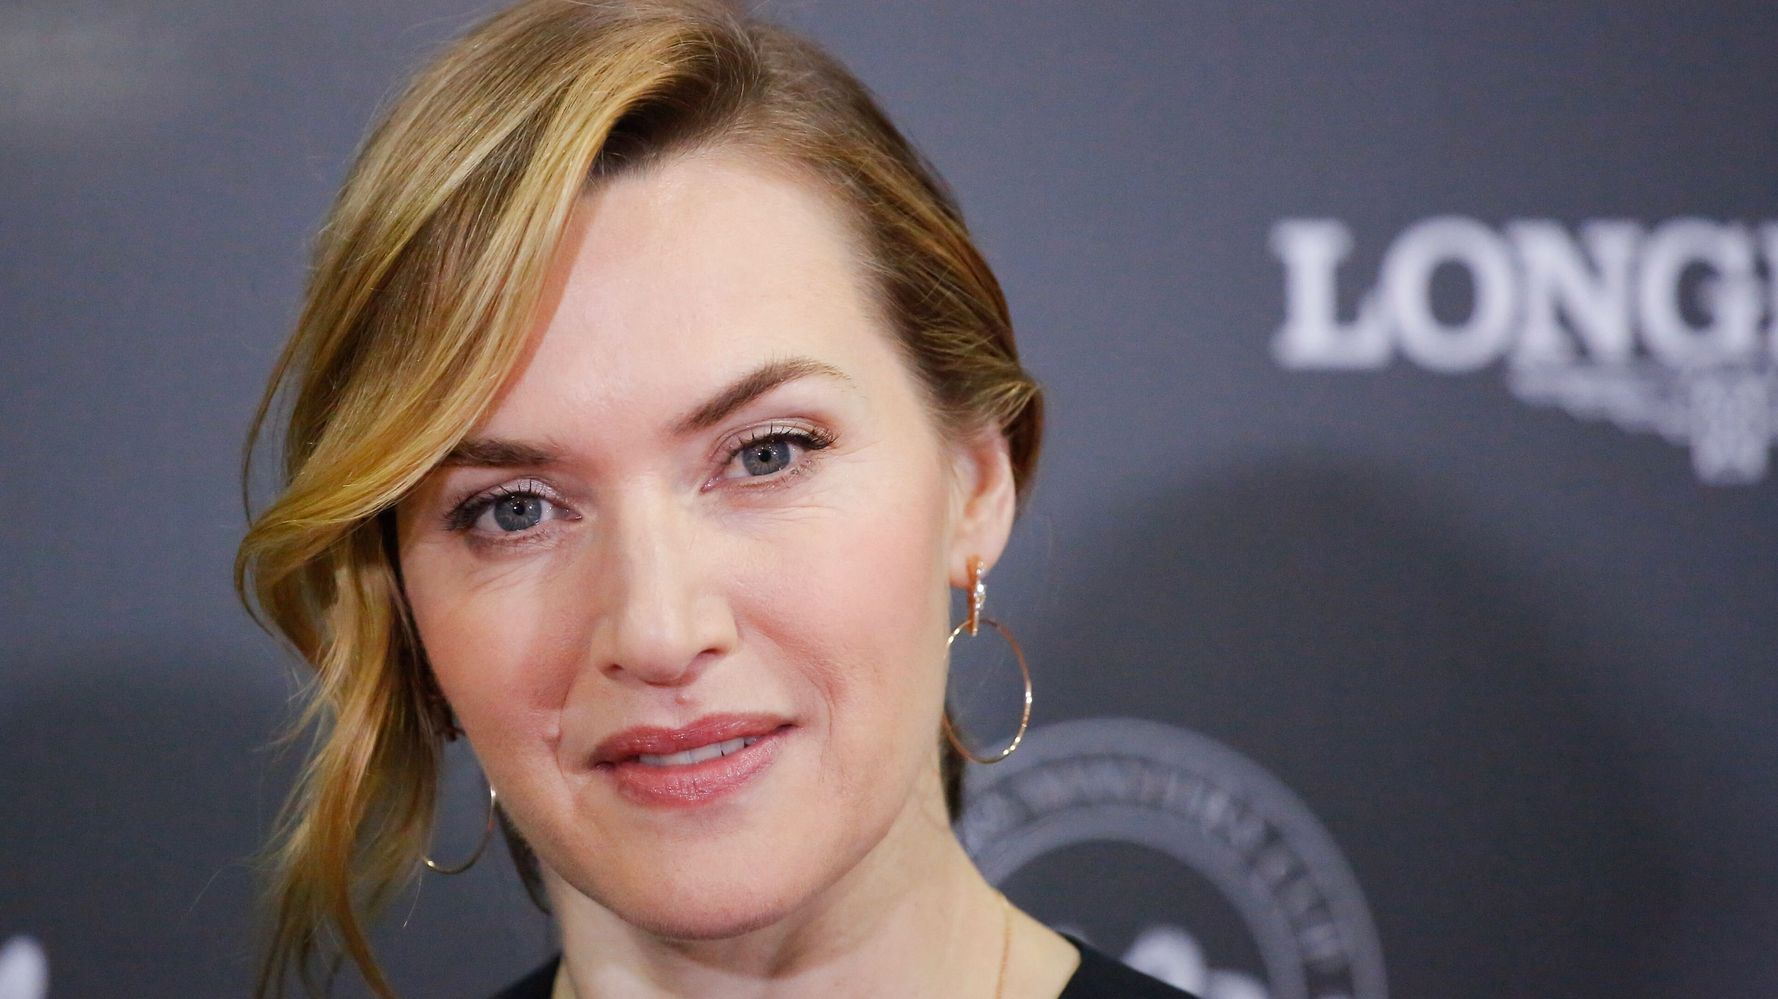 Kate Winslet Describes Being Awestruck By 'Mythical' Wawa